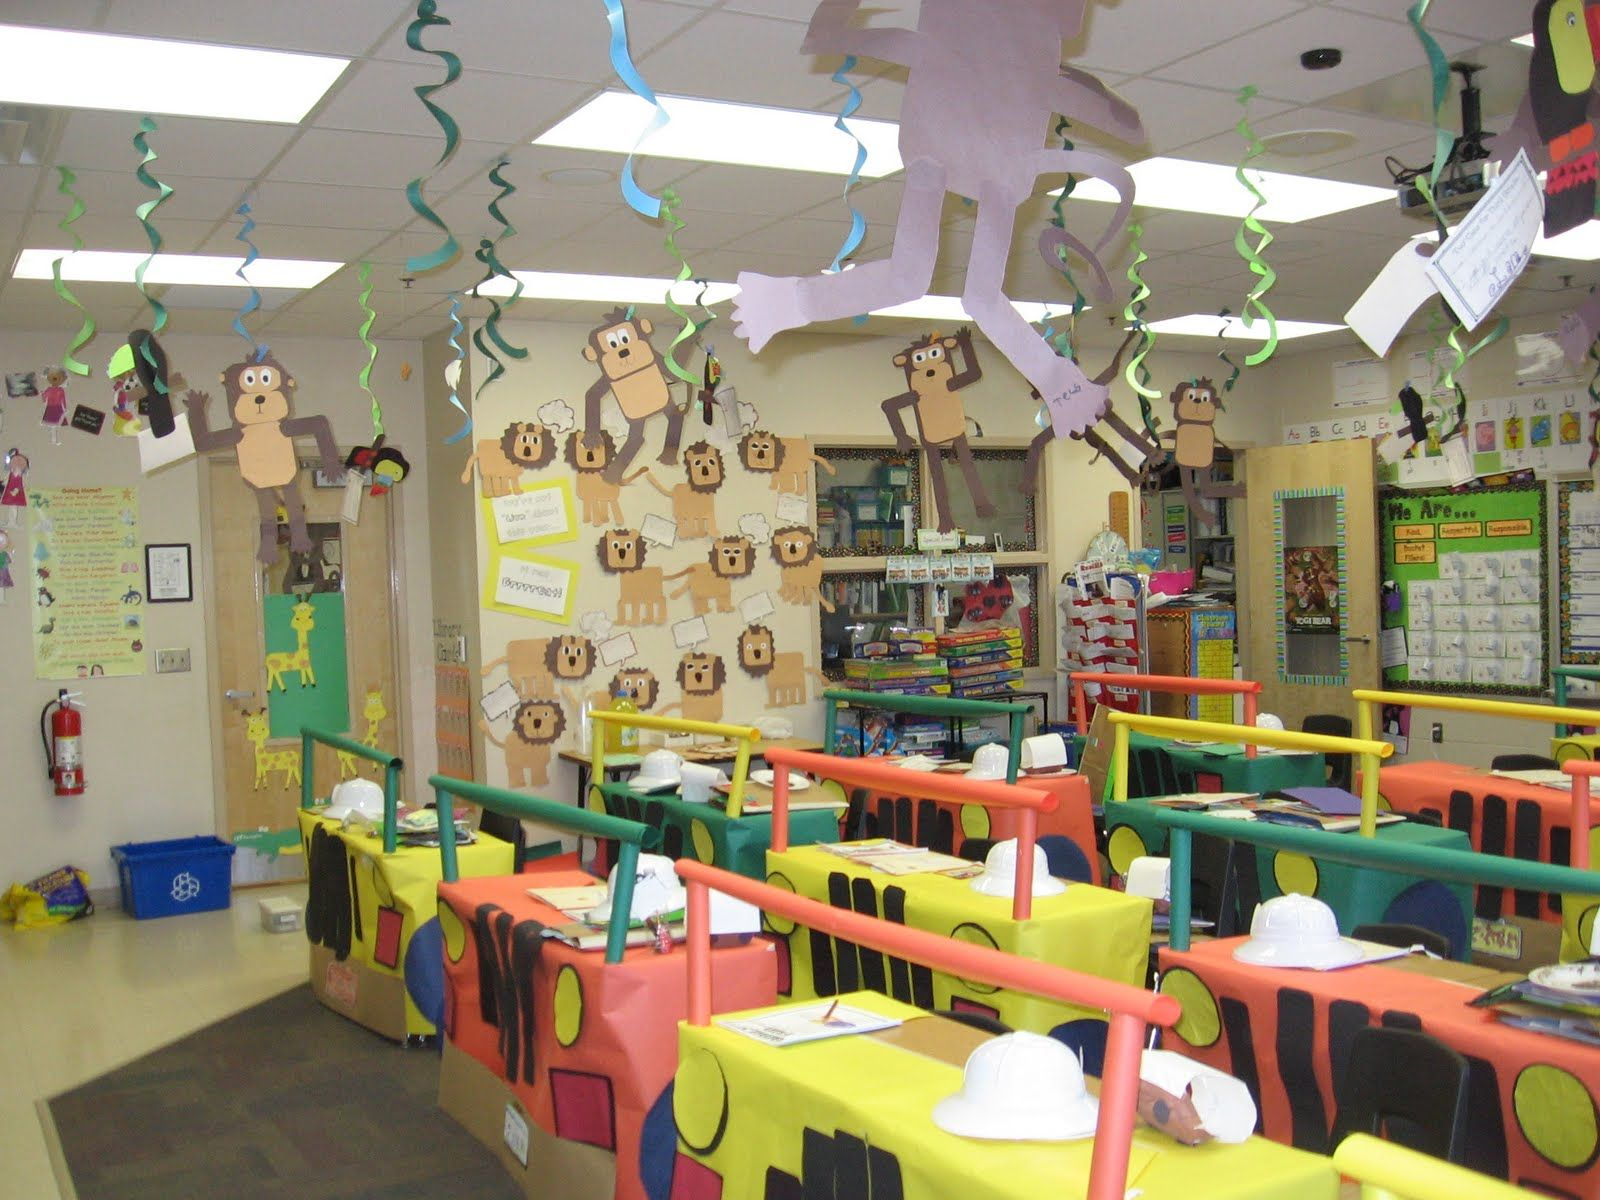 Unique Classroom Design Ideas ~ Safari classroom decoration i love how the teacher turned